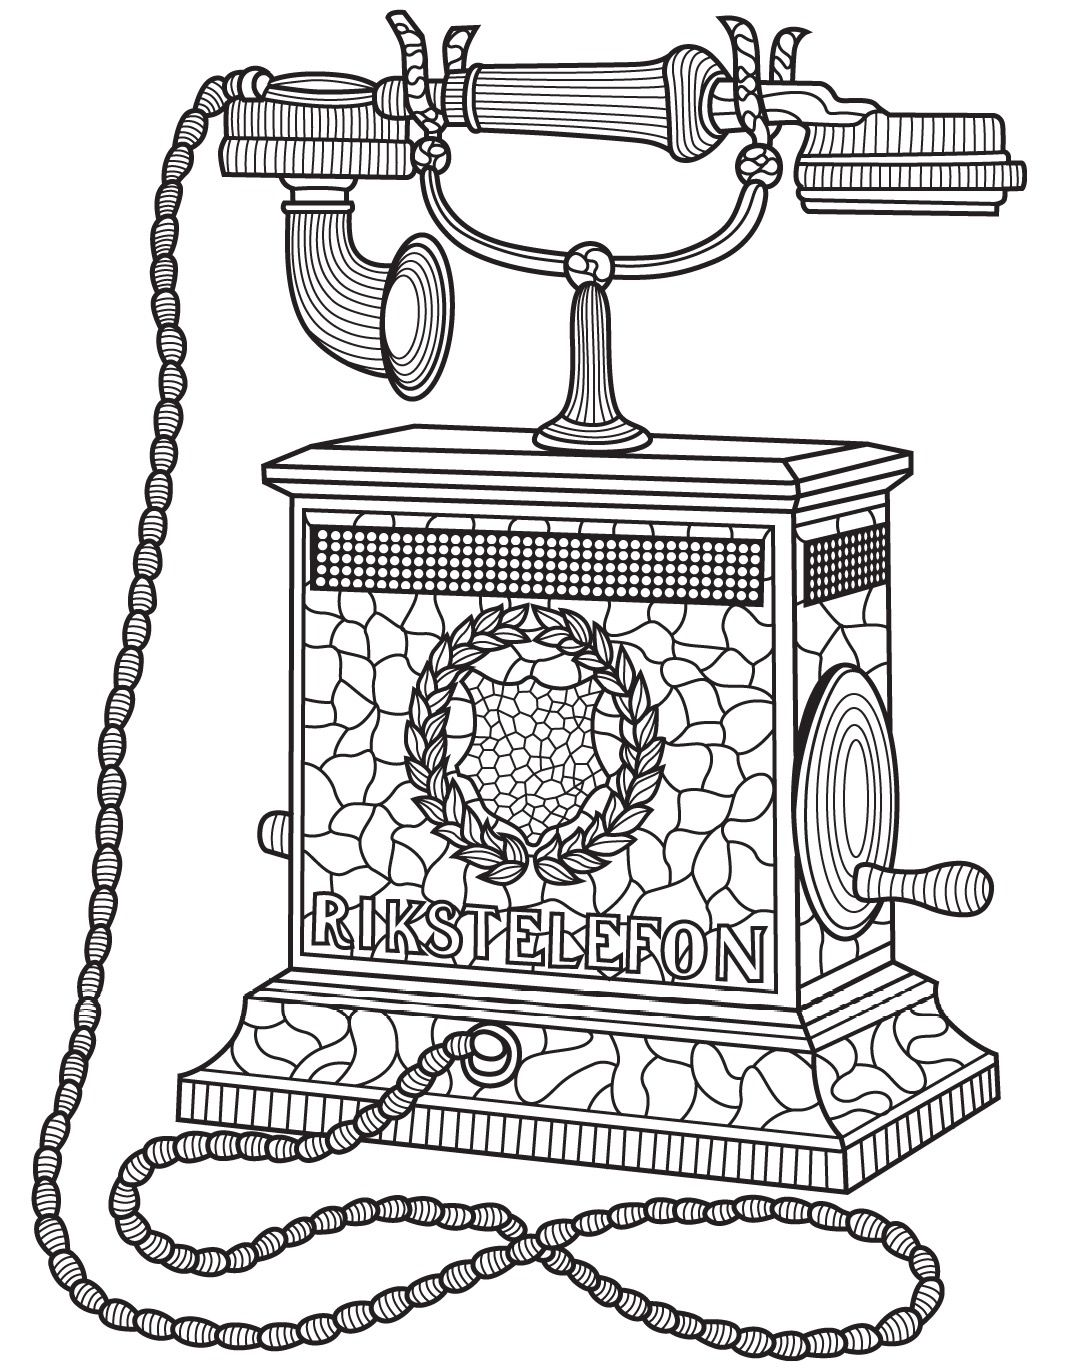 Antique telephone | Colorish: coloring app for adults by ...